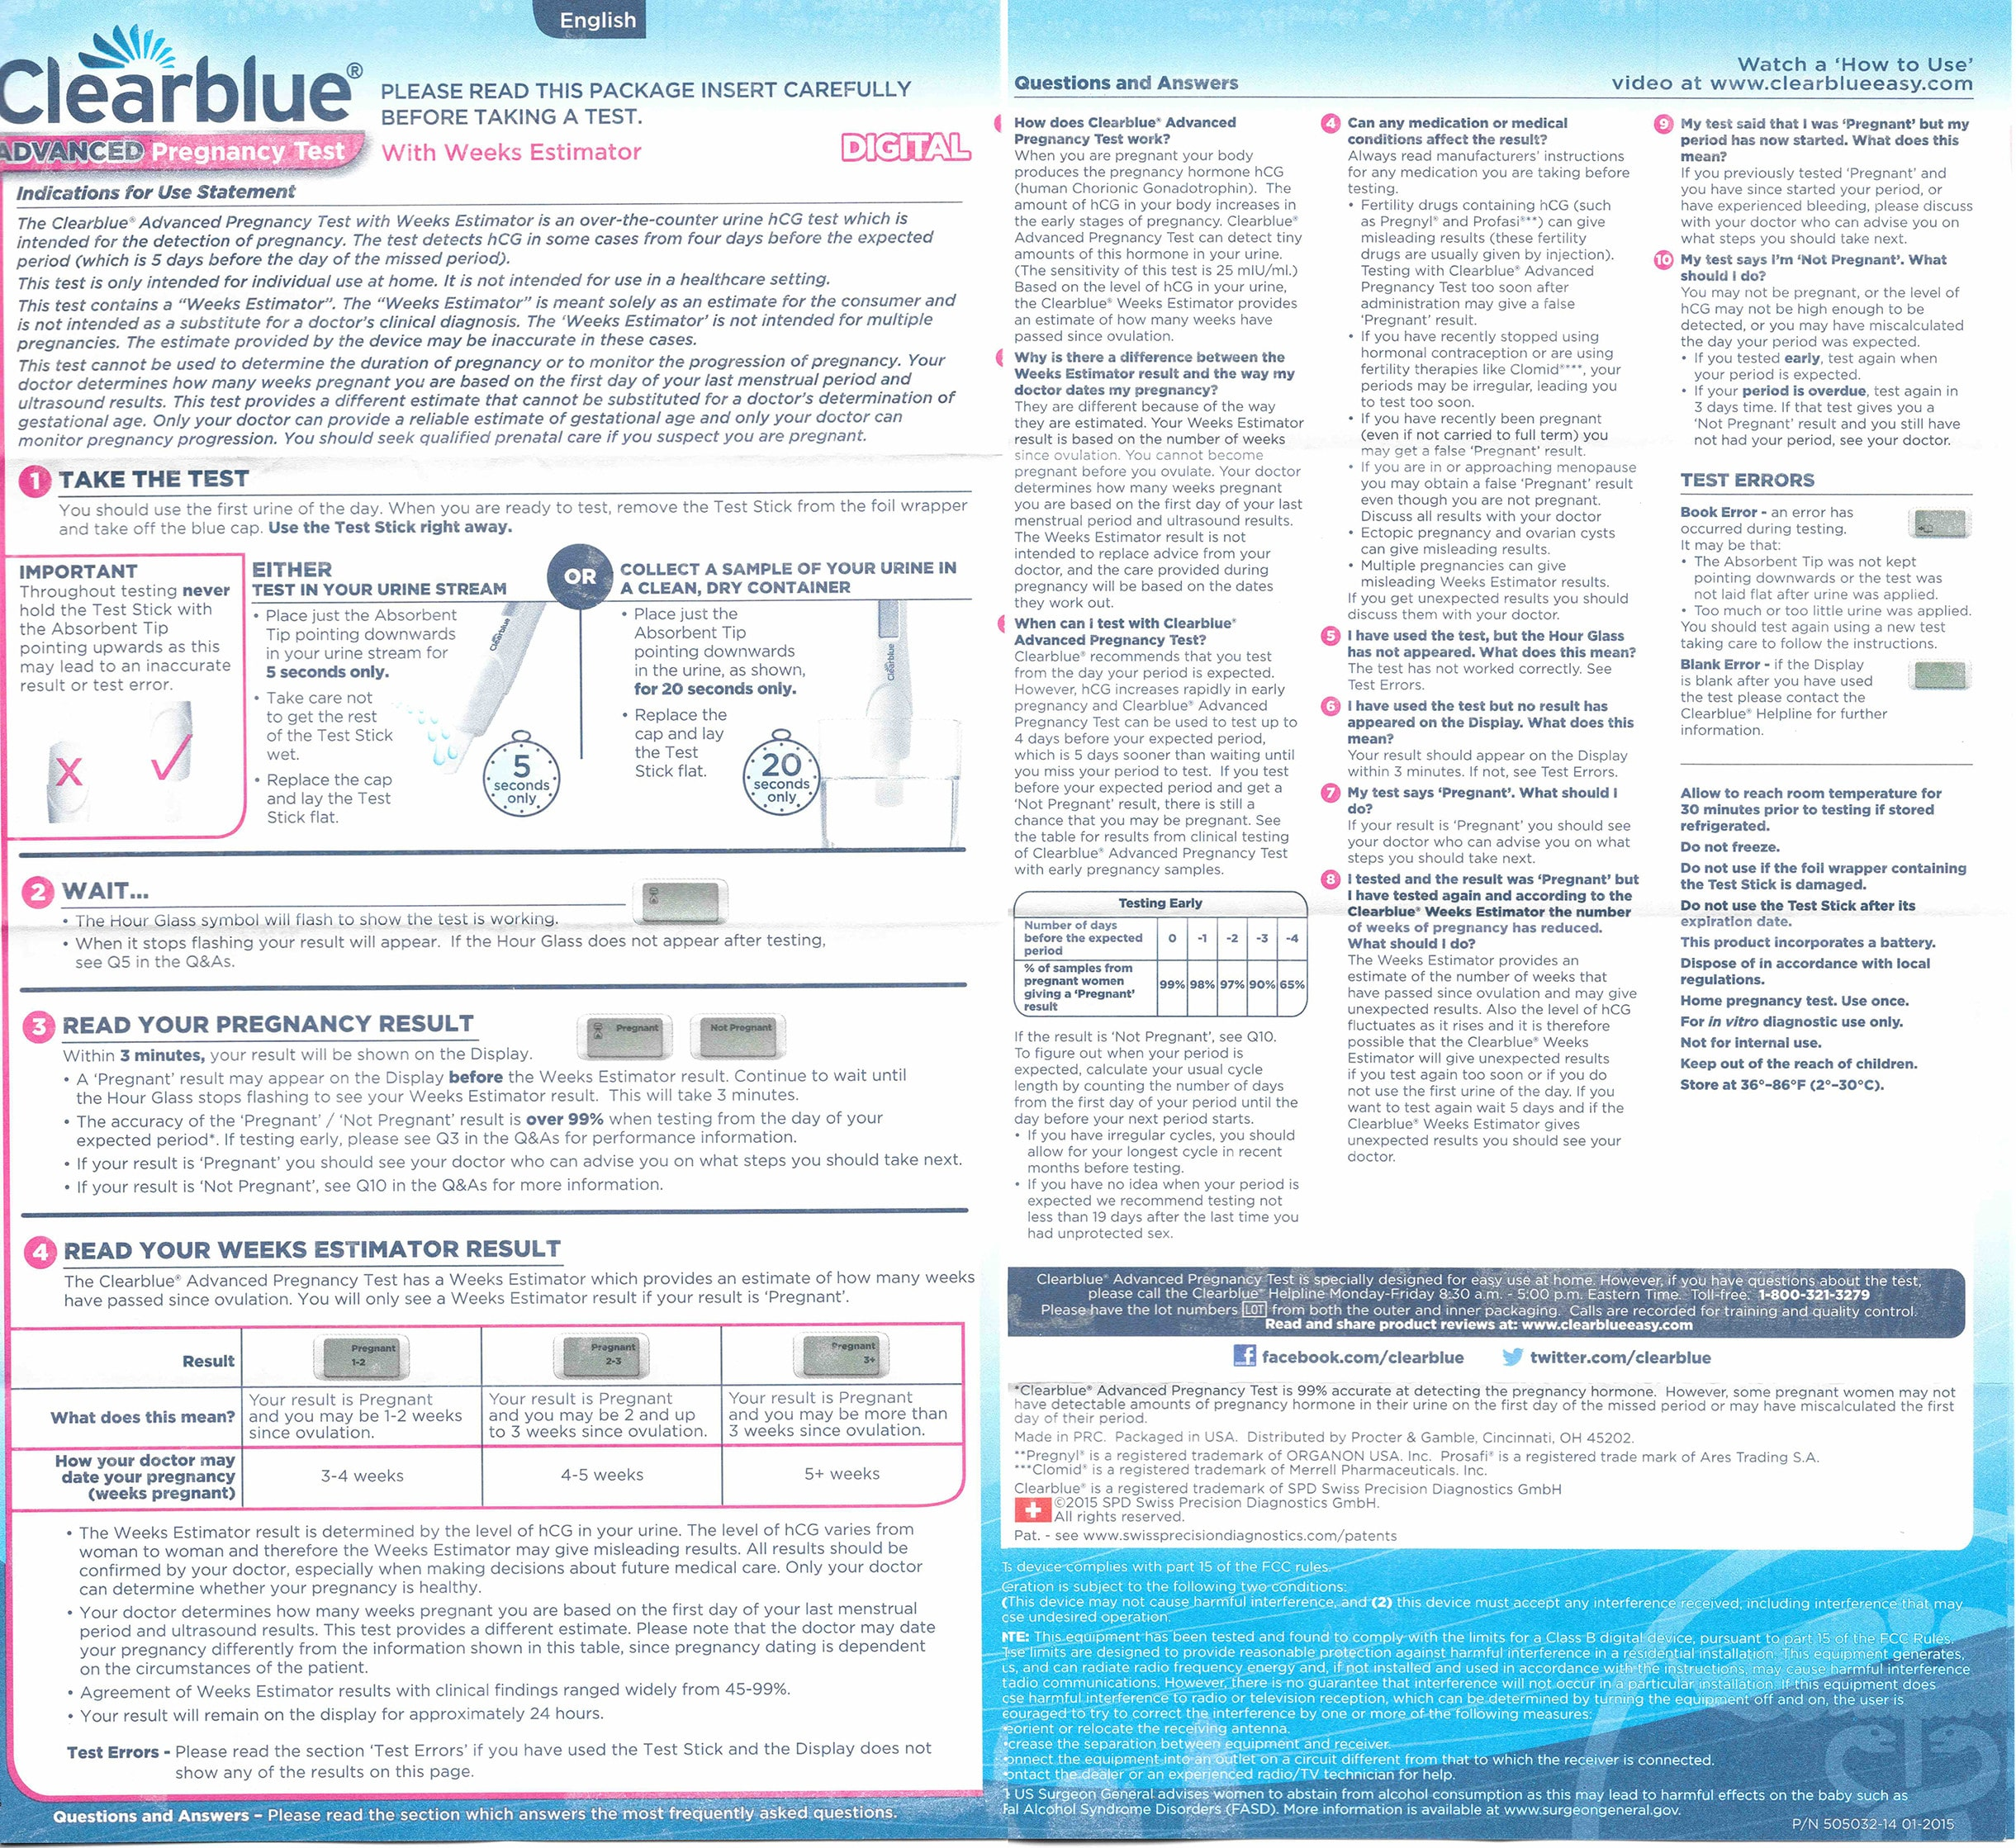 Clearblue Pregnancy Test Instructions In